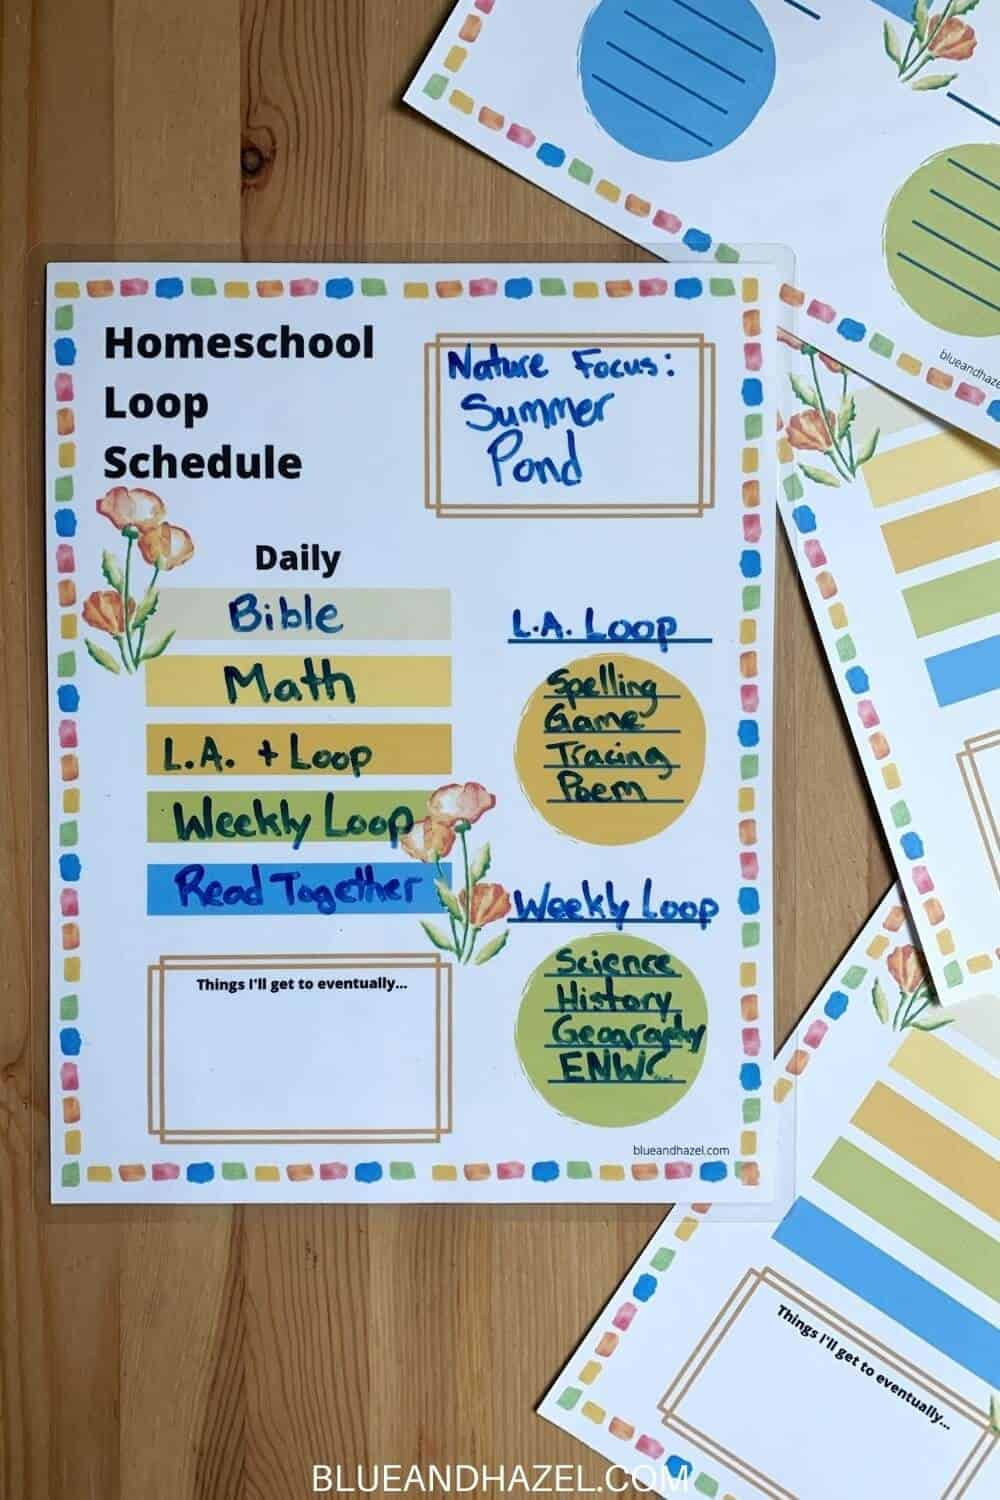 homeschool loop schedule to help organize your day. This loop schedule has a daily subject list and 1-4 loops you can customize. It's the perfect blend of not having to worry about doing a certain topic on a certain day, while still getting to all your school subjects.